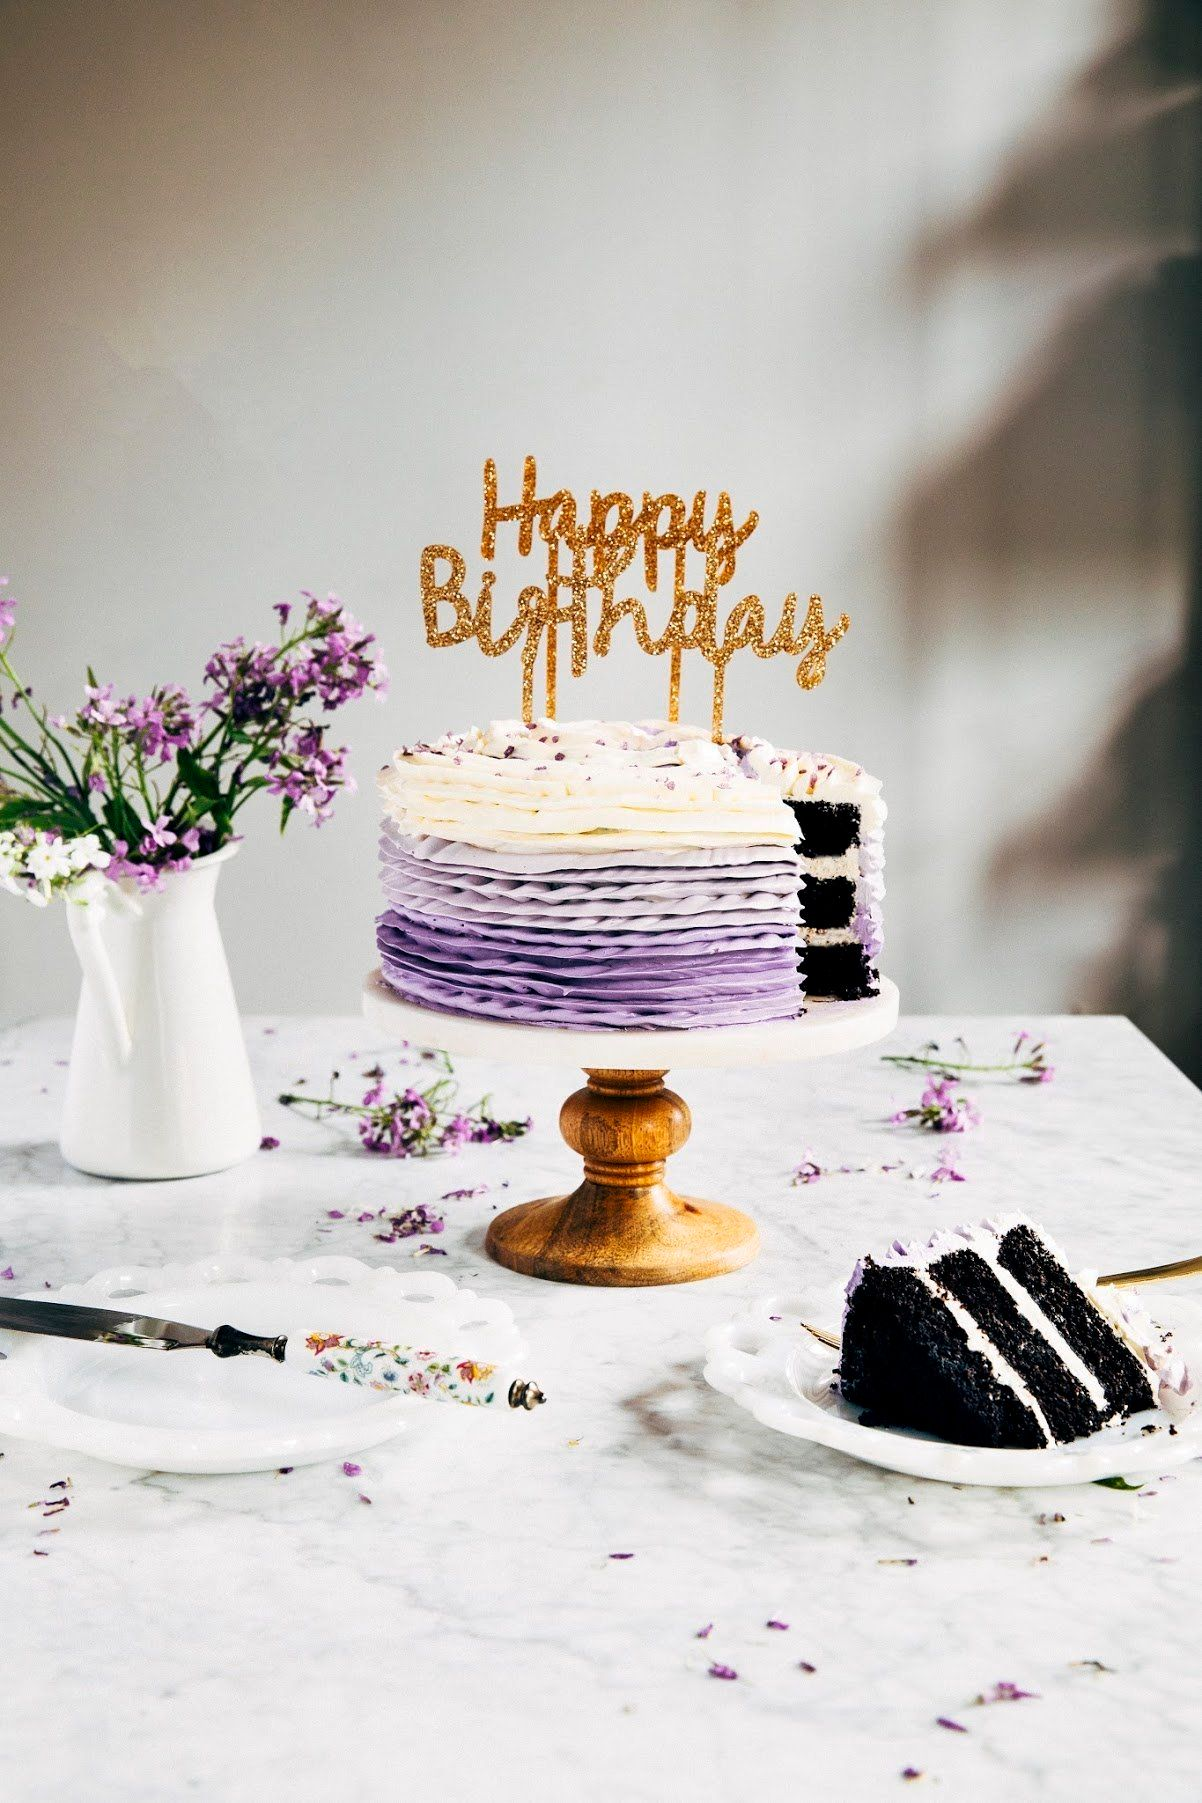 The Best Birthday Cake Recipes From Layer Cakes To Sheet Cakes